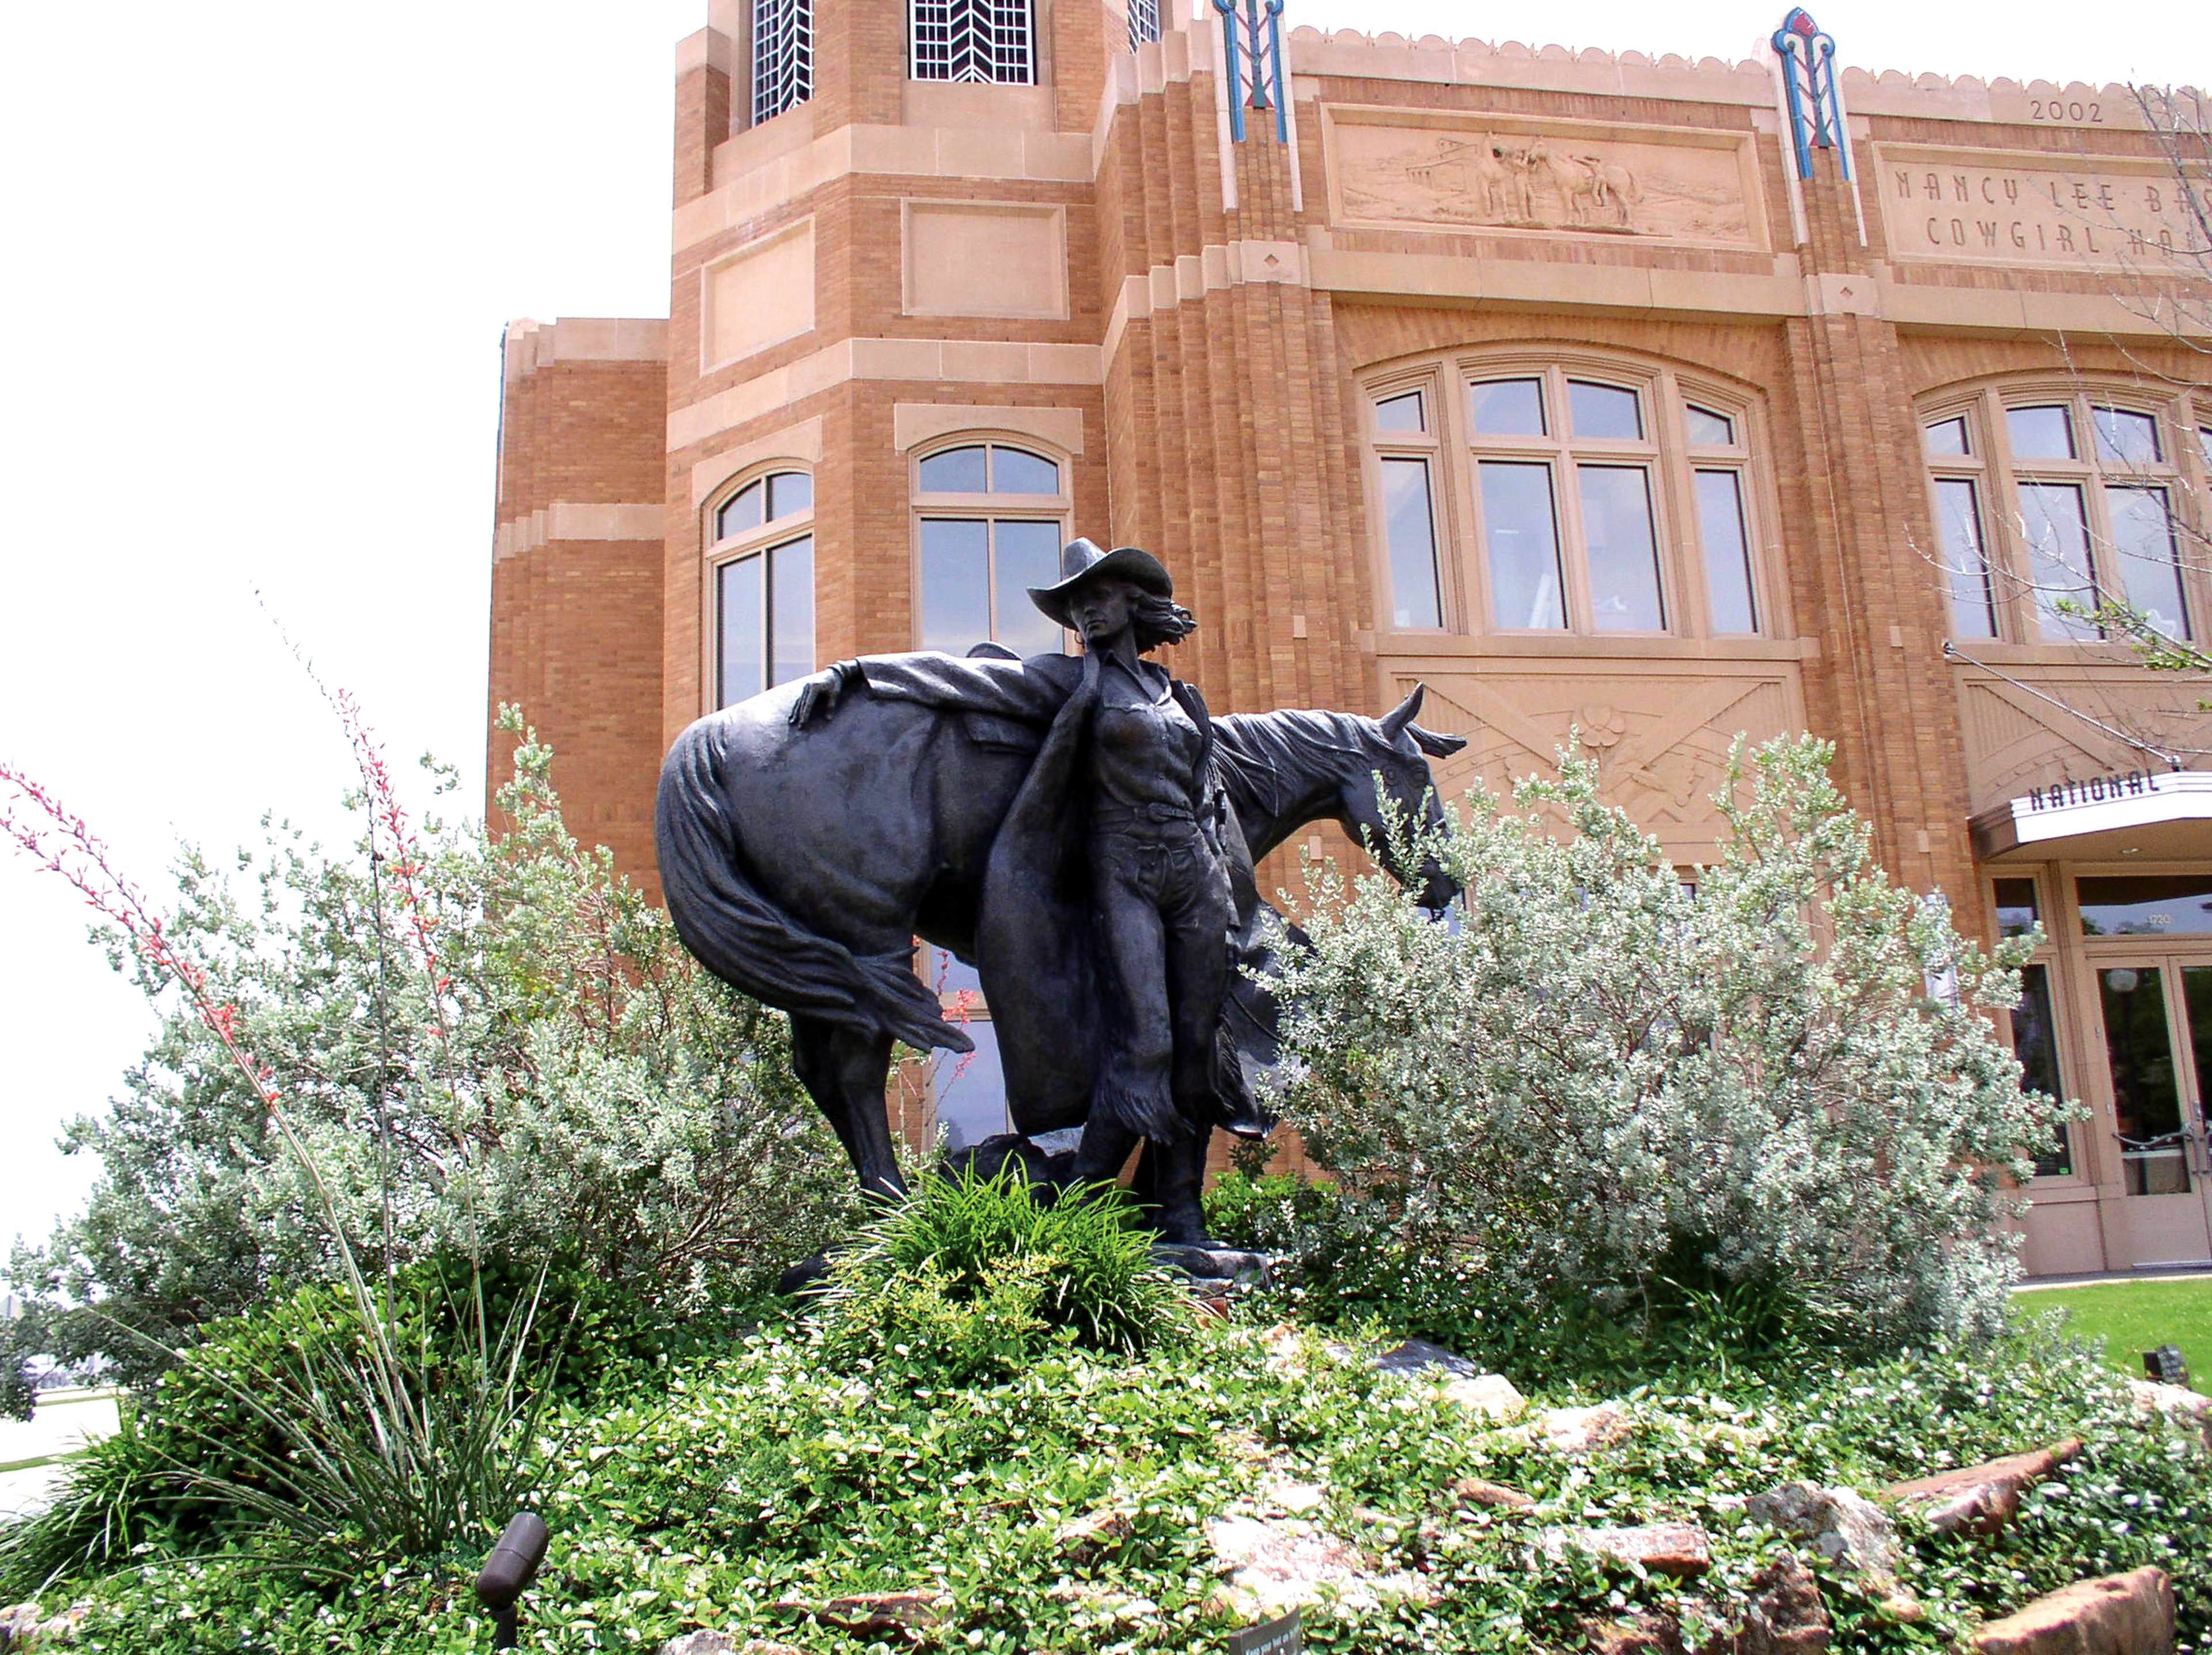 Sculpture outside of Cowgirl Museum